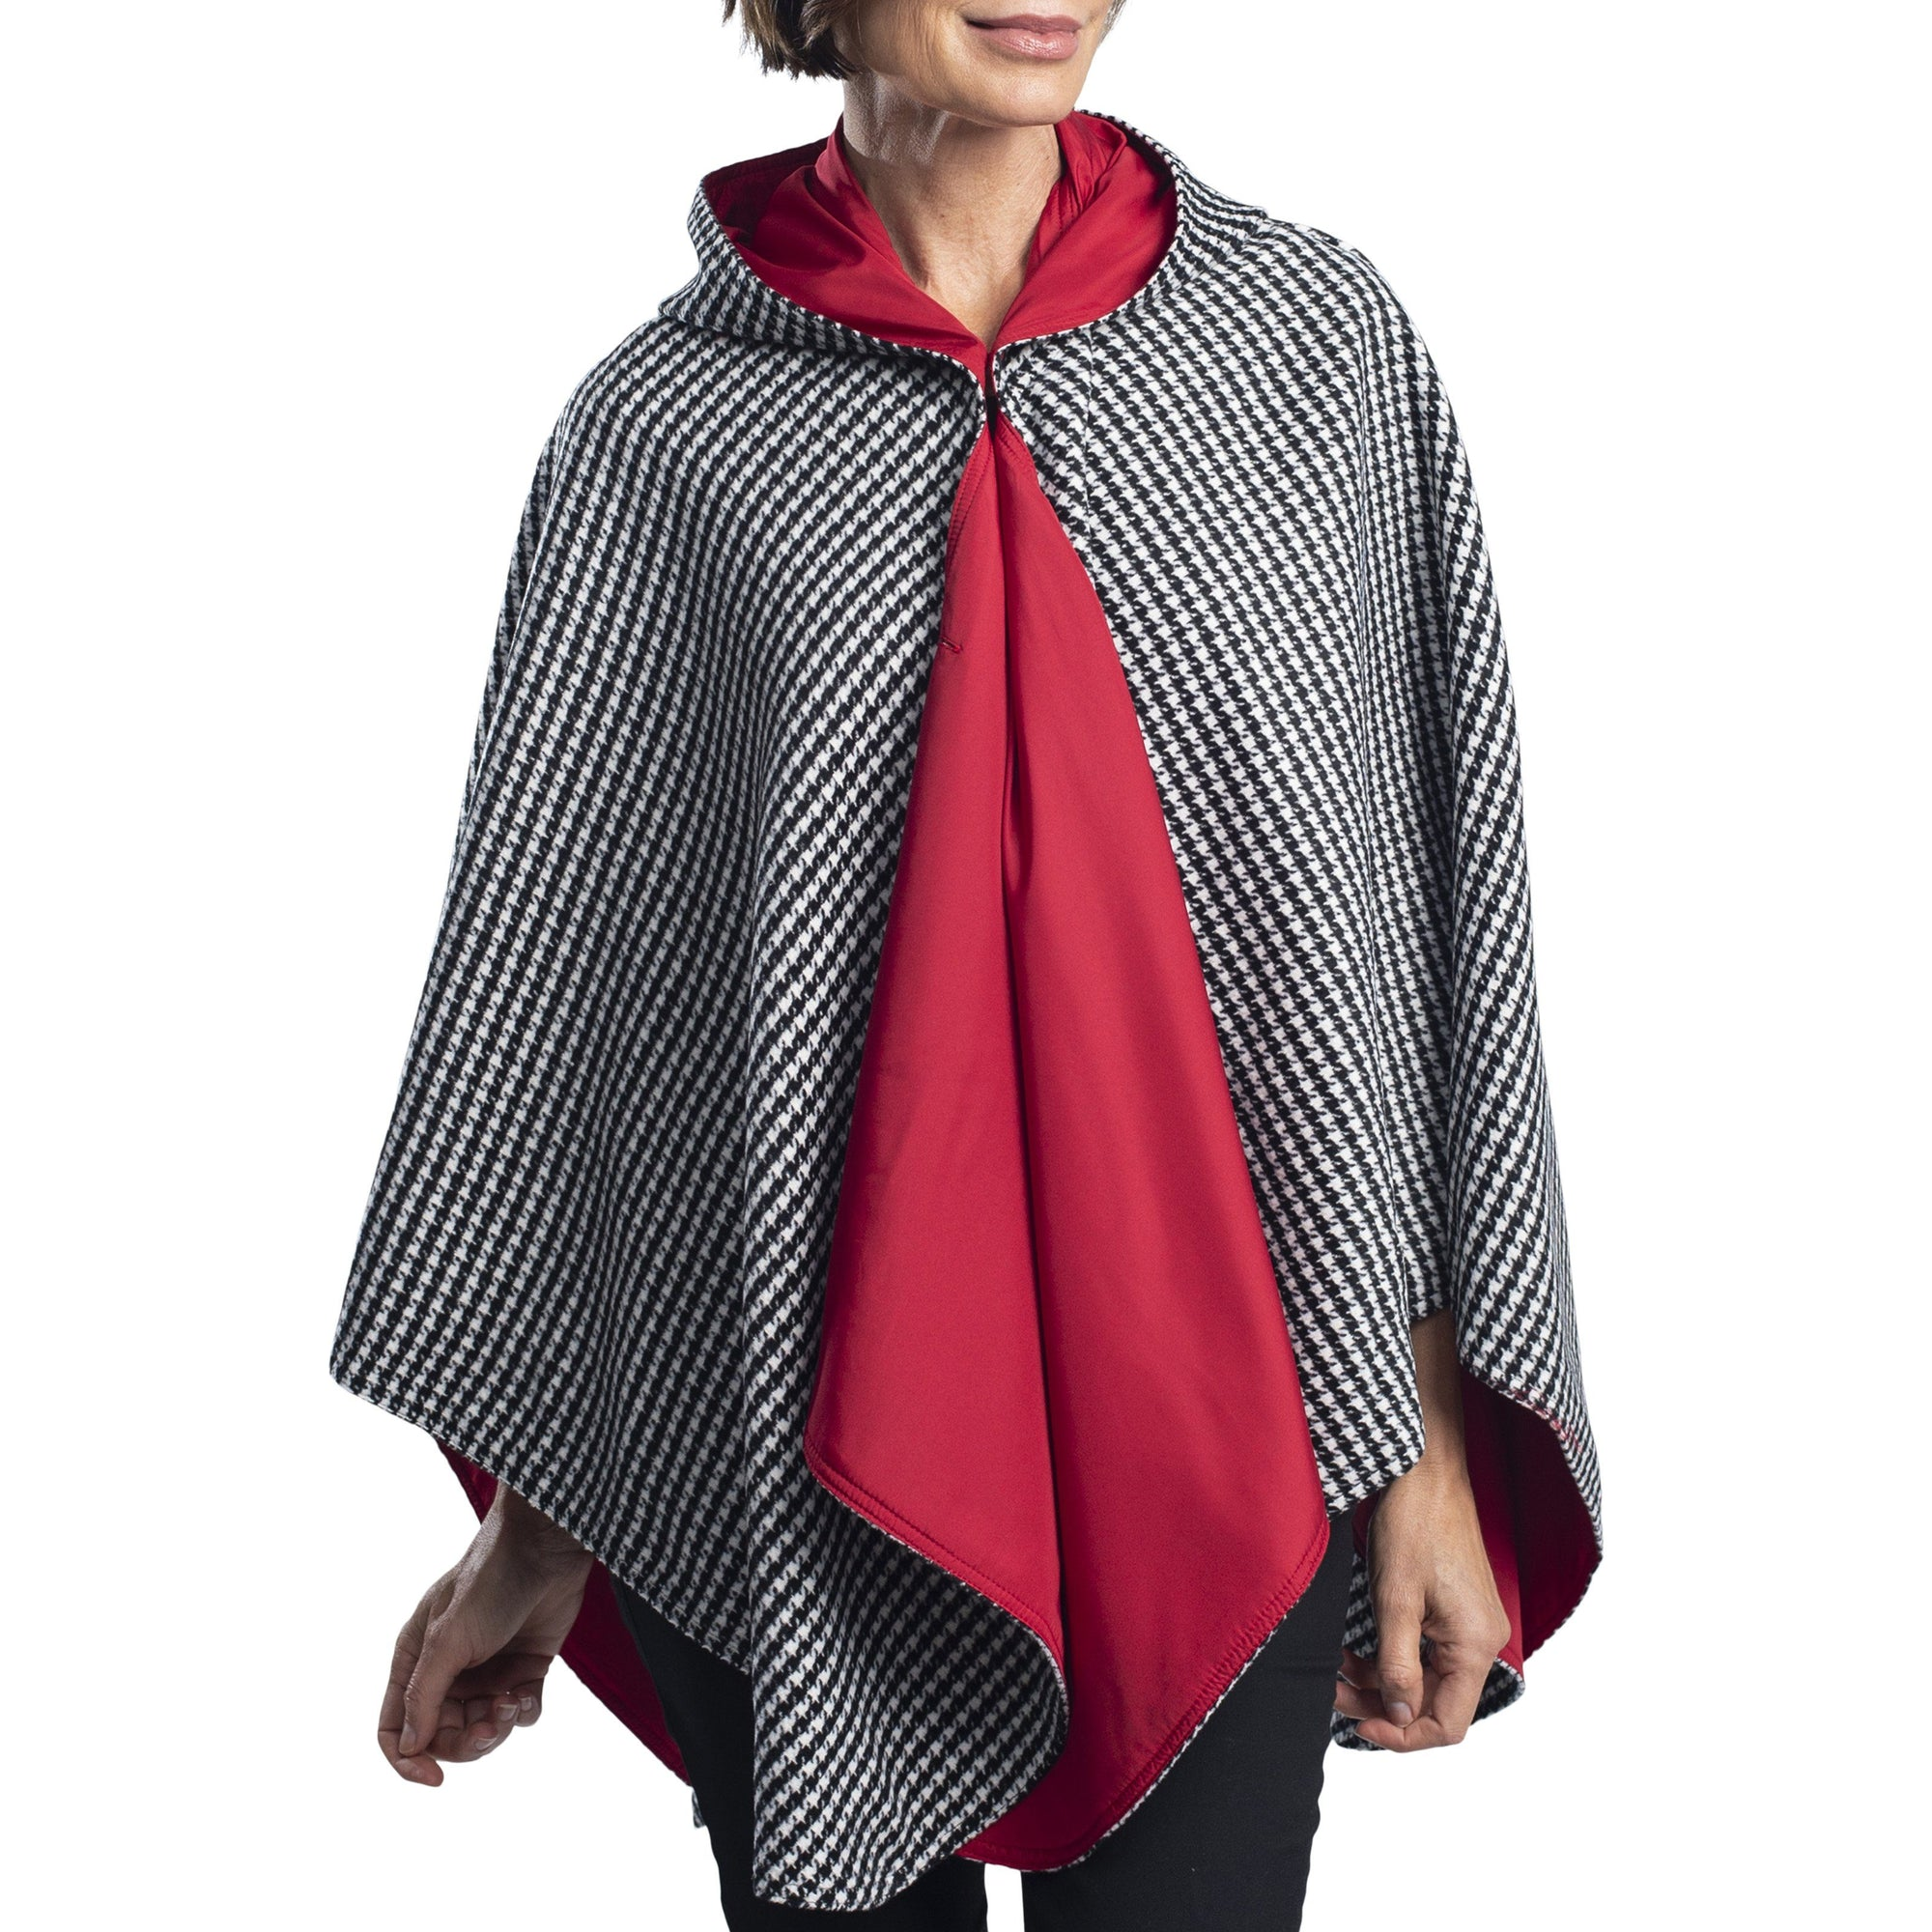 Woman wearing a WarmCaper Warm Houndstooth/Crimson Rainproof and travel cape by RainCaper